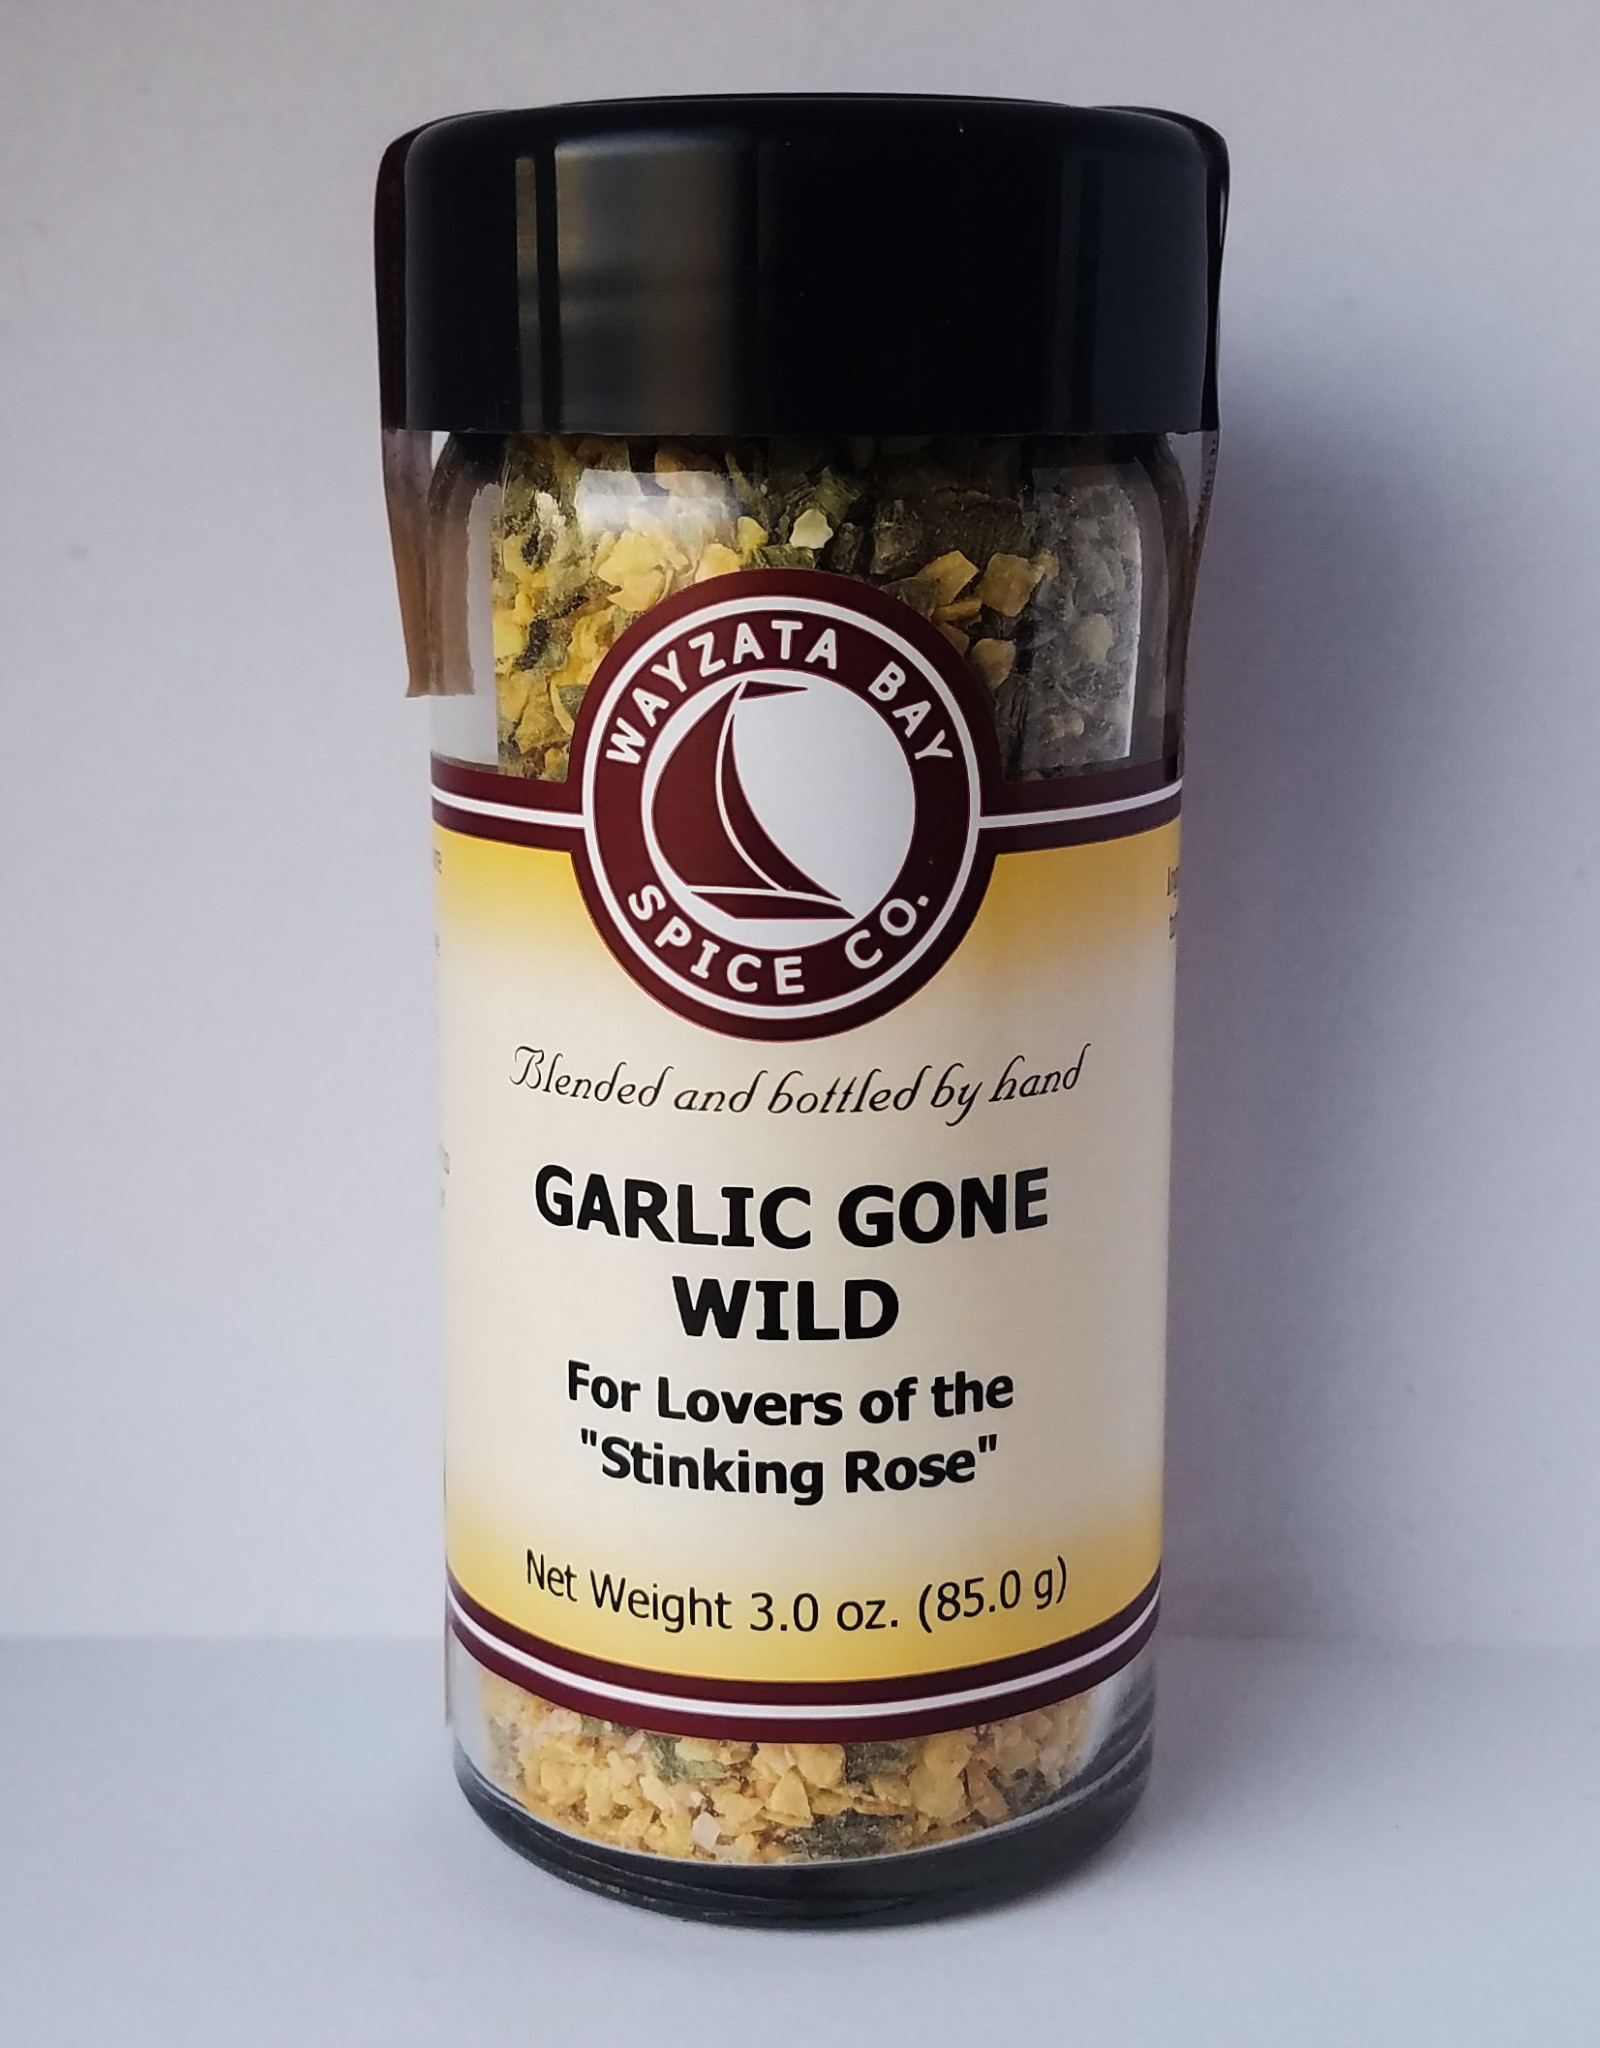 Wayzata Bay Spice Co. Garlic Gone Wild Seasoning